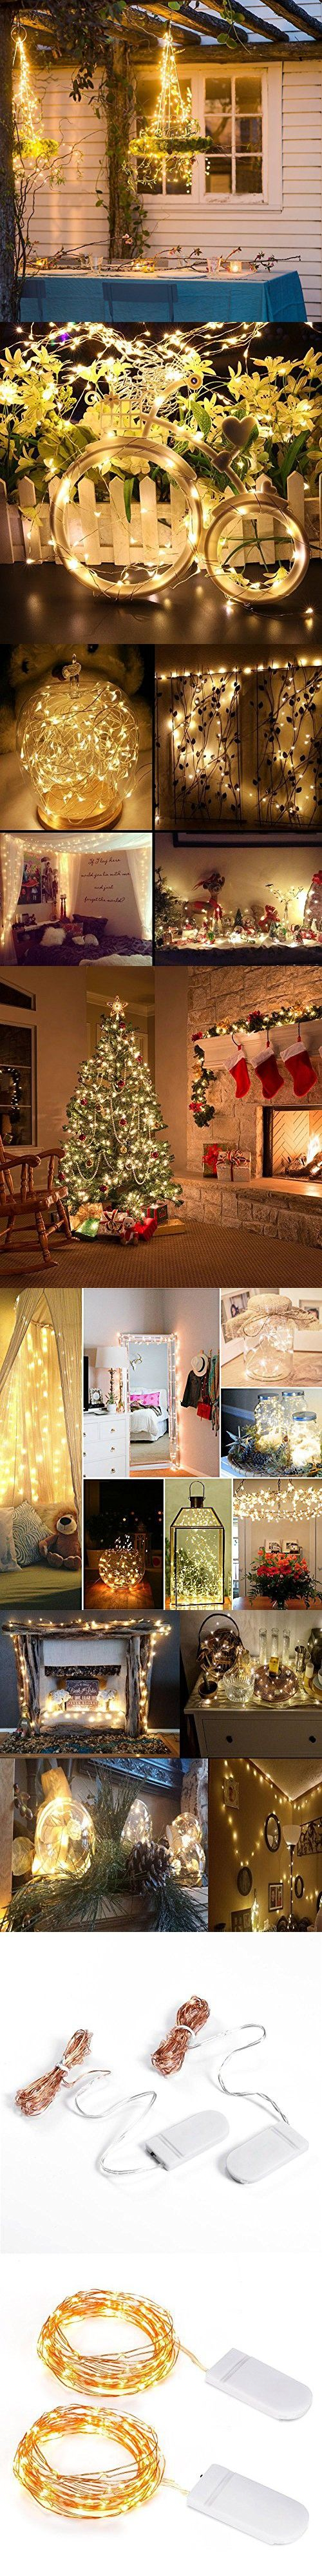 1000+ ideas about Christmas String Lights on Pinterest Christmas Icicle Lights, Led Christmas ...